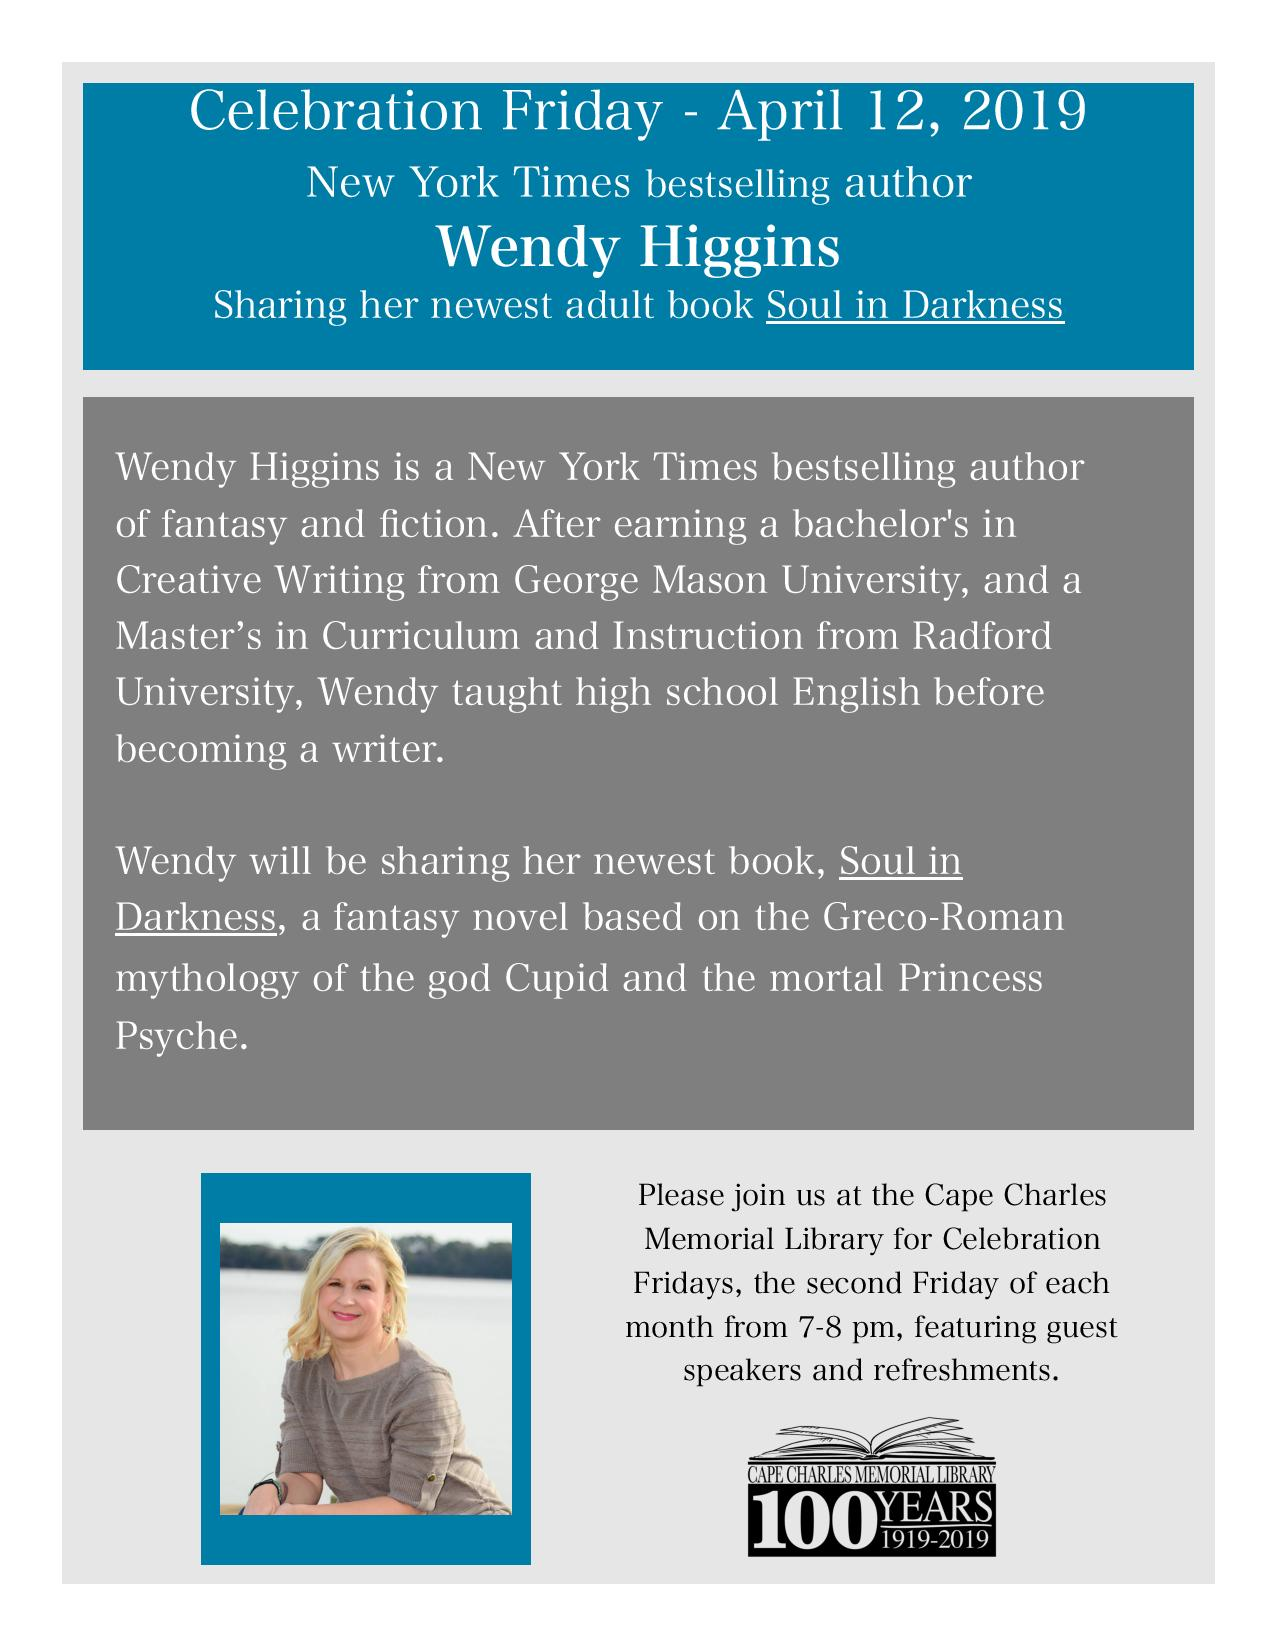 Celebration Friday with Wendy Higgins @ Cape Charles Memorial Library